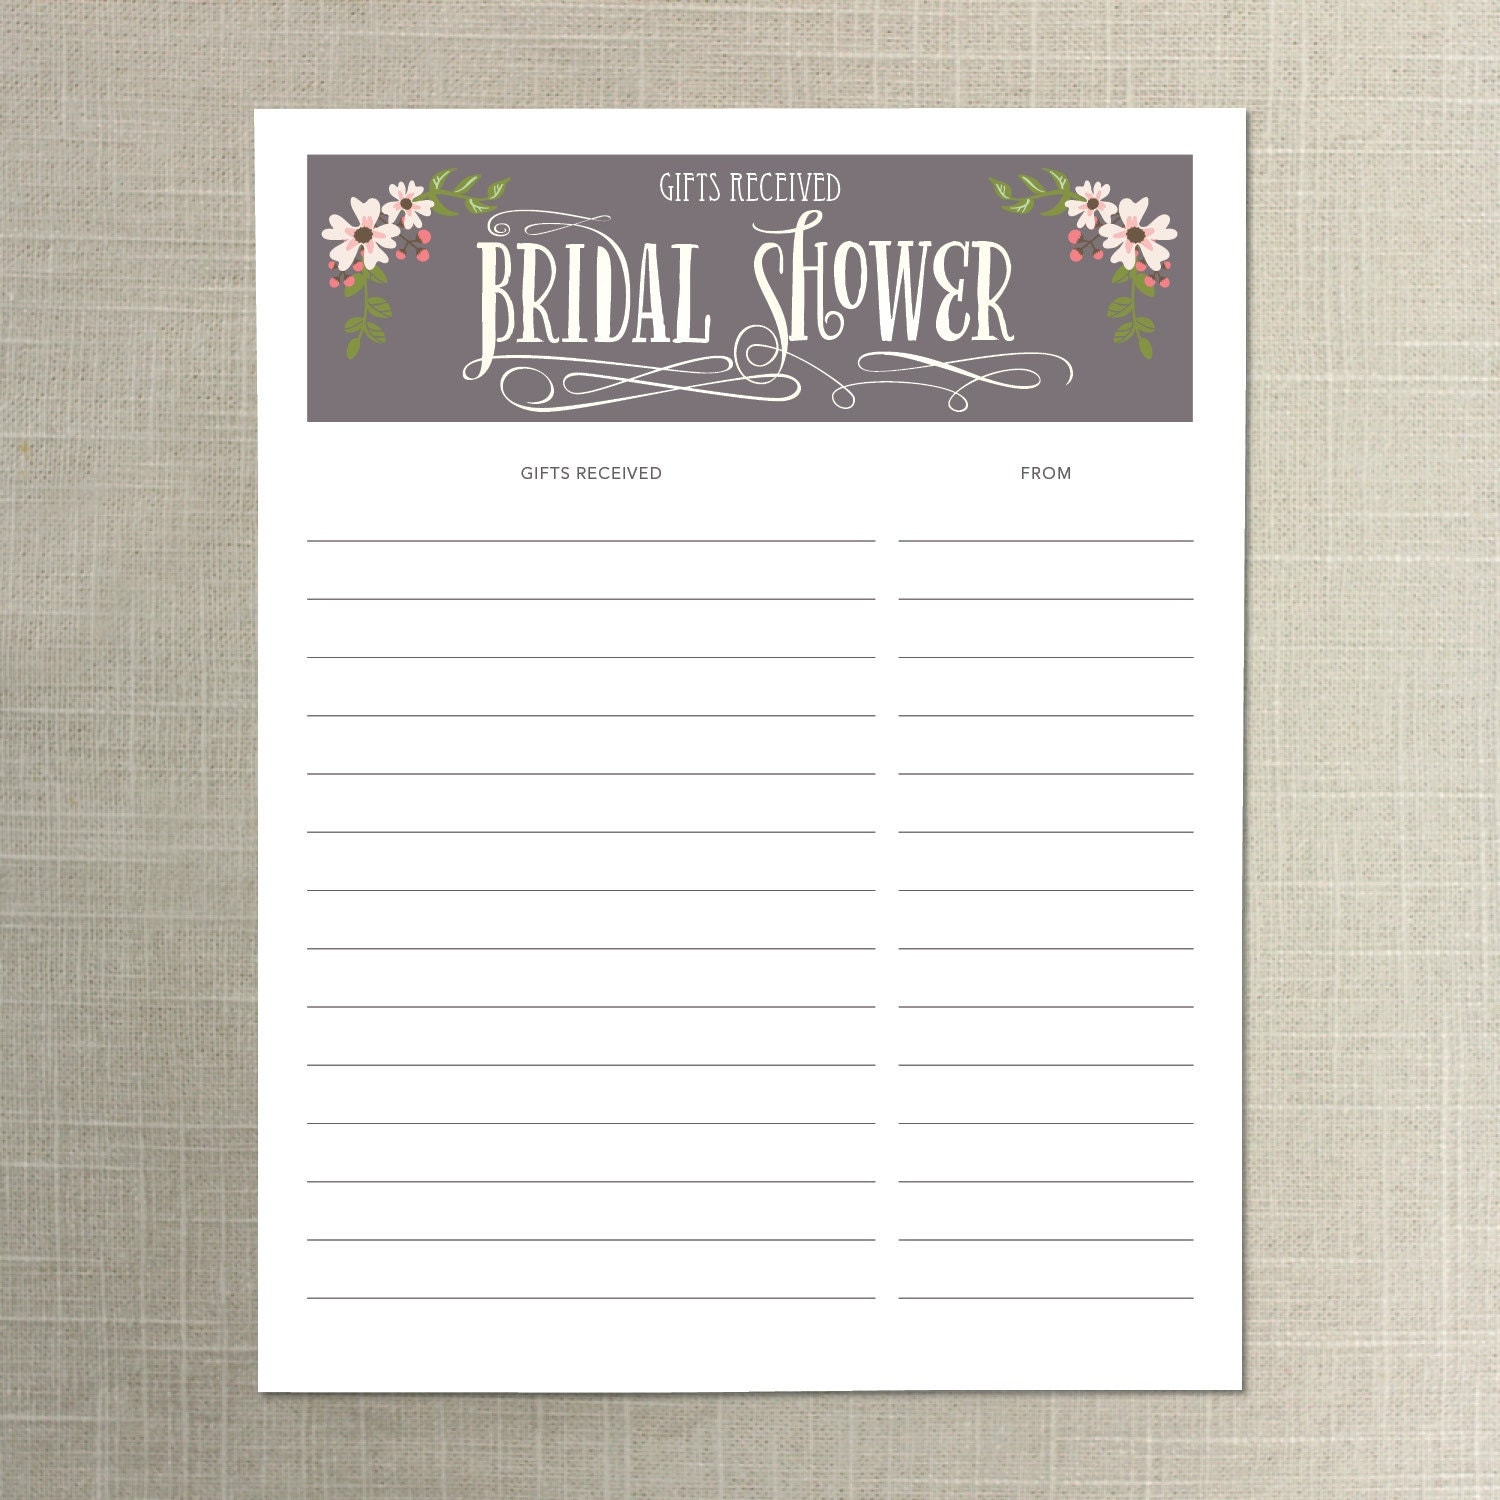 Wedding Gift Log Template : Bridal+Shower+Gift+List+Template Instant Download Bridal Shower Gift ...